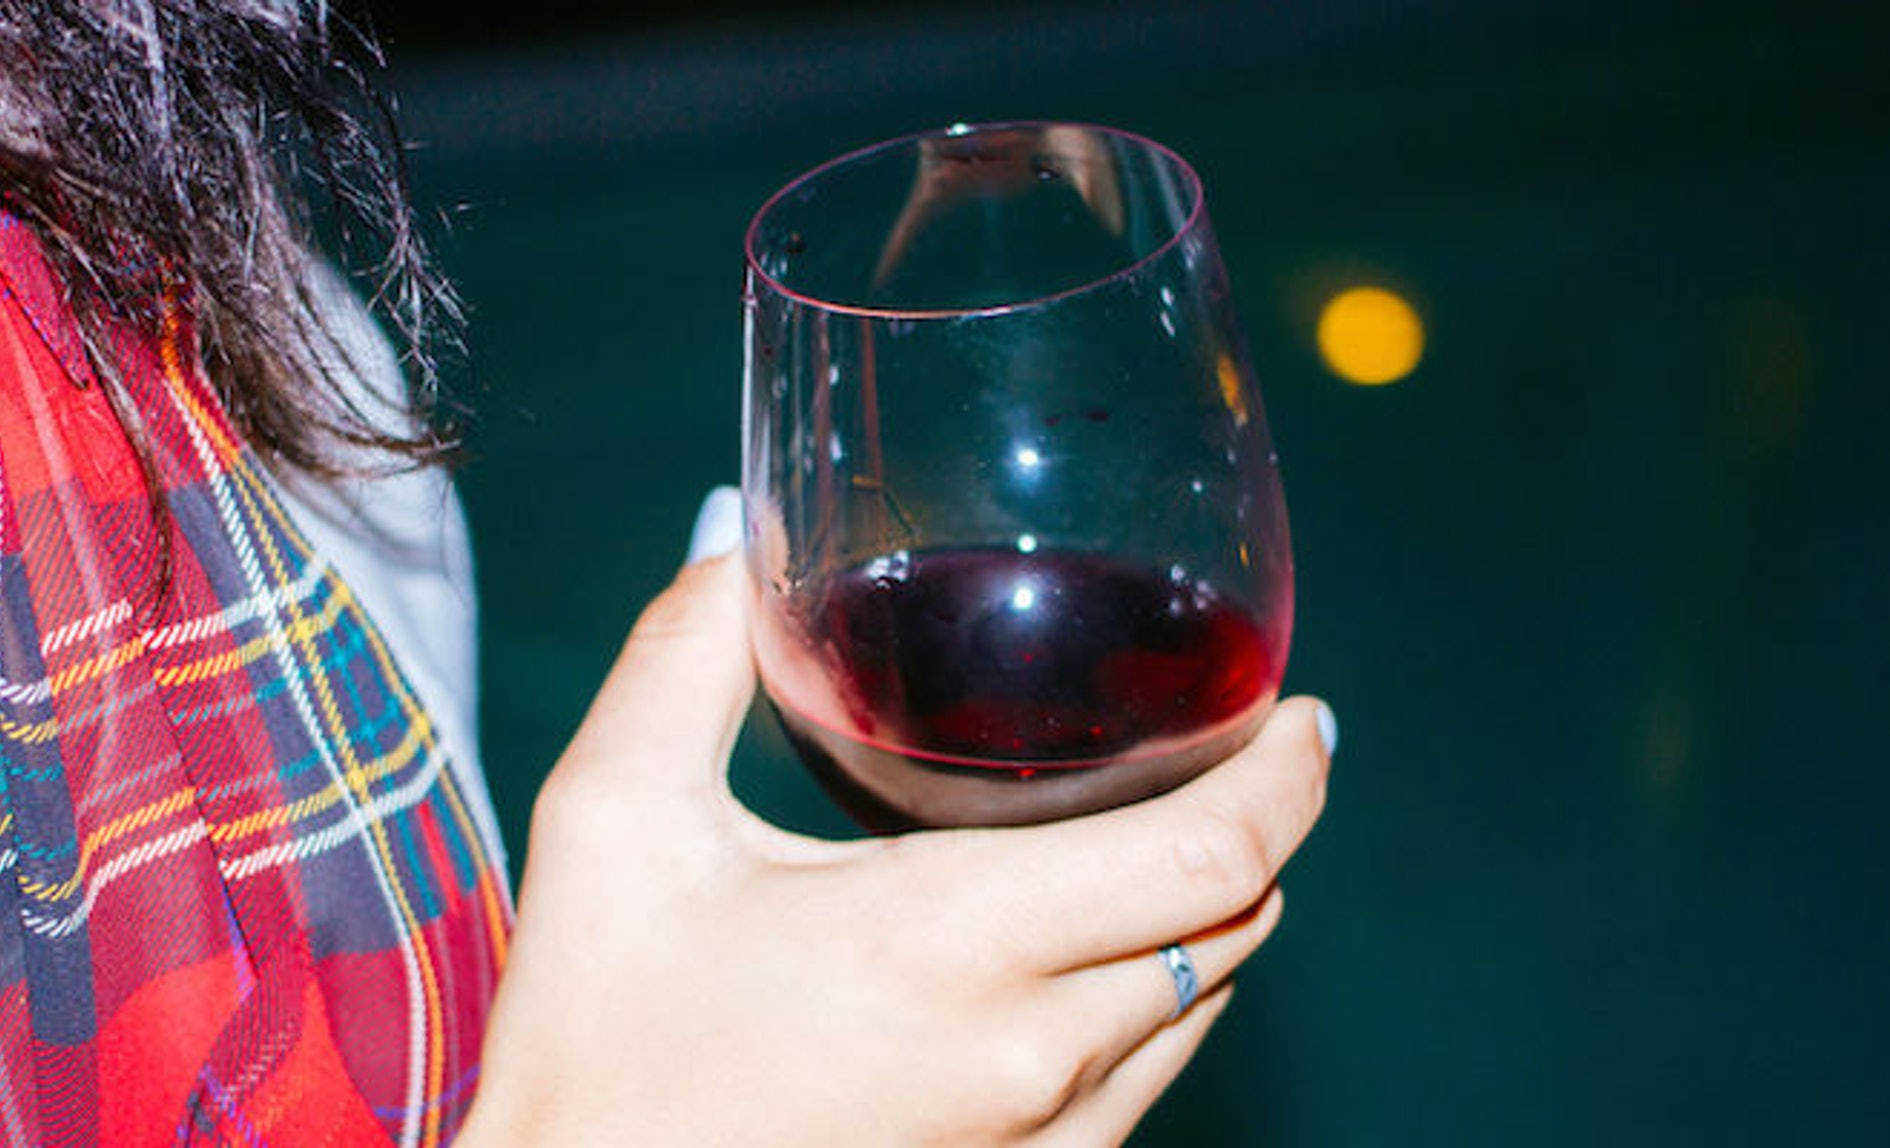 OMFG: Science Says A Glass Of Red Wine May Be Equivalent To An Hour At The Gym